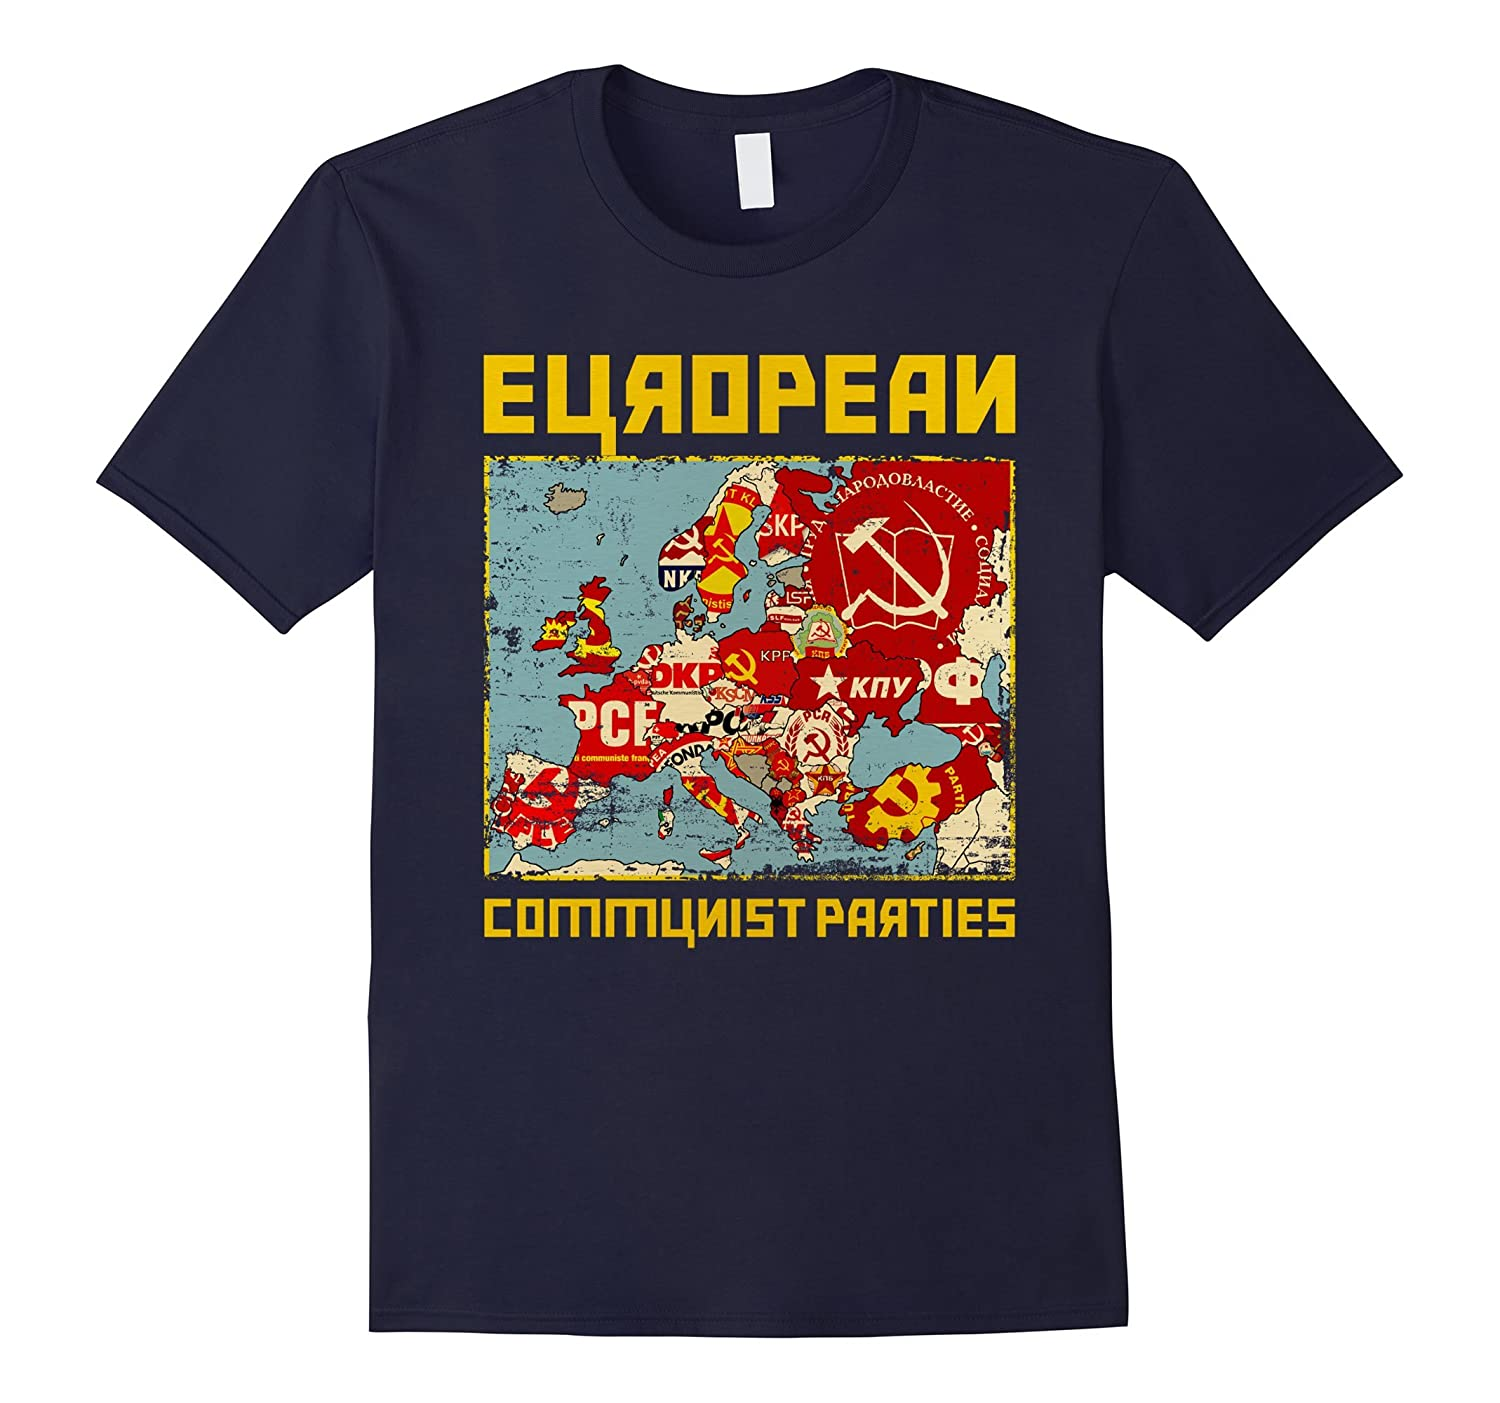 European communist parties - Funny Parody Communist T-Shirt-Vaci